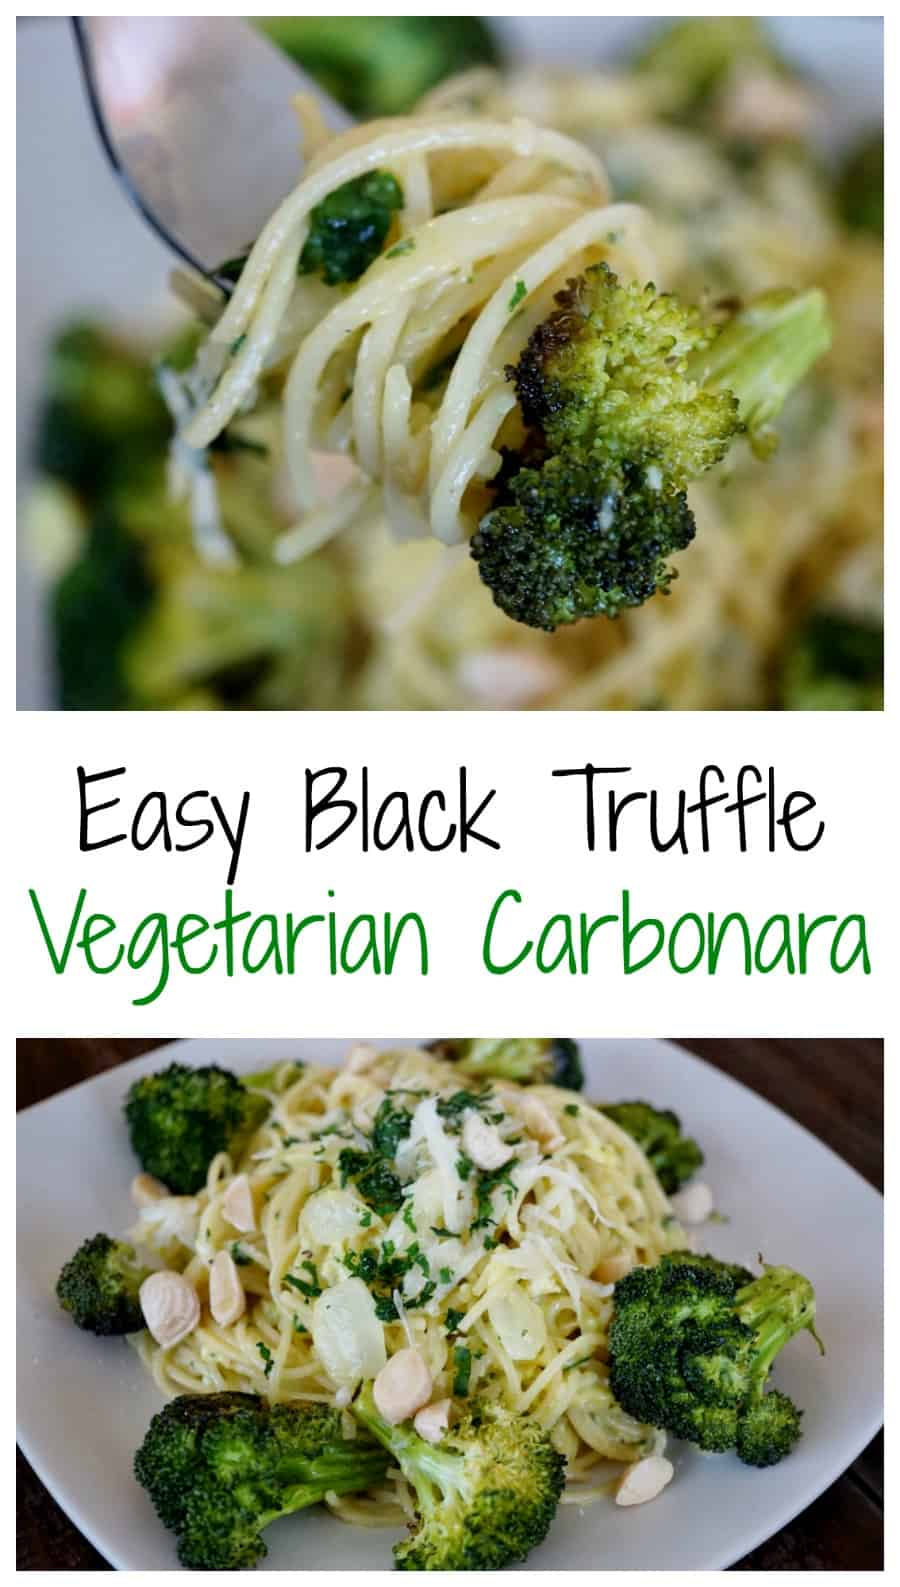 Black Truffle Vegetarian Carbonara